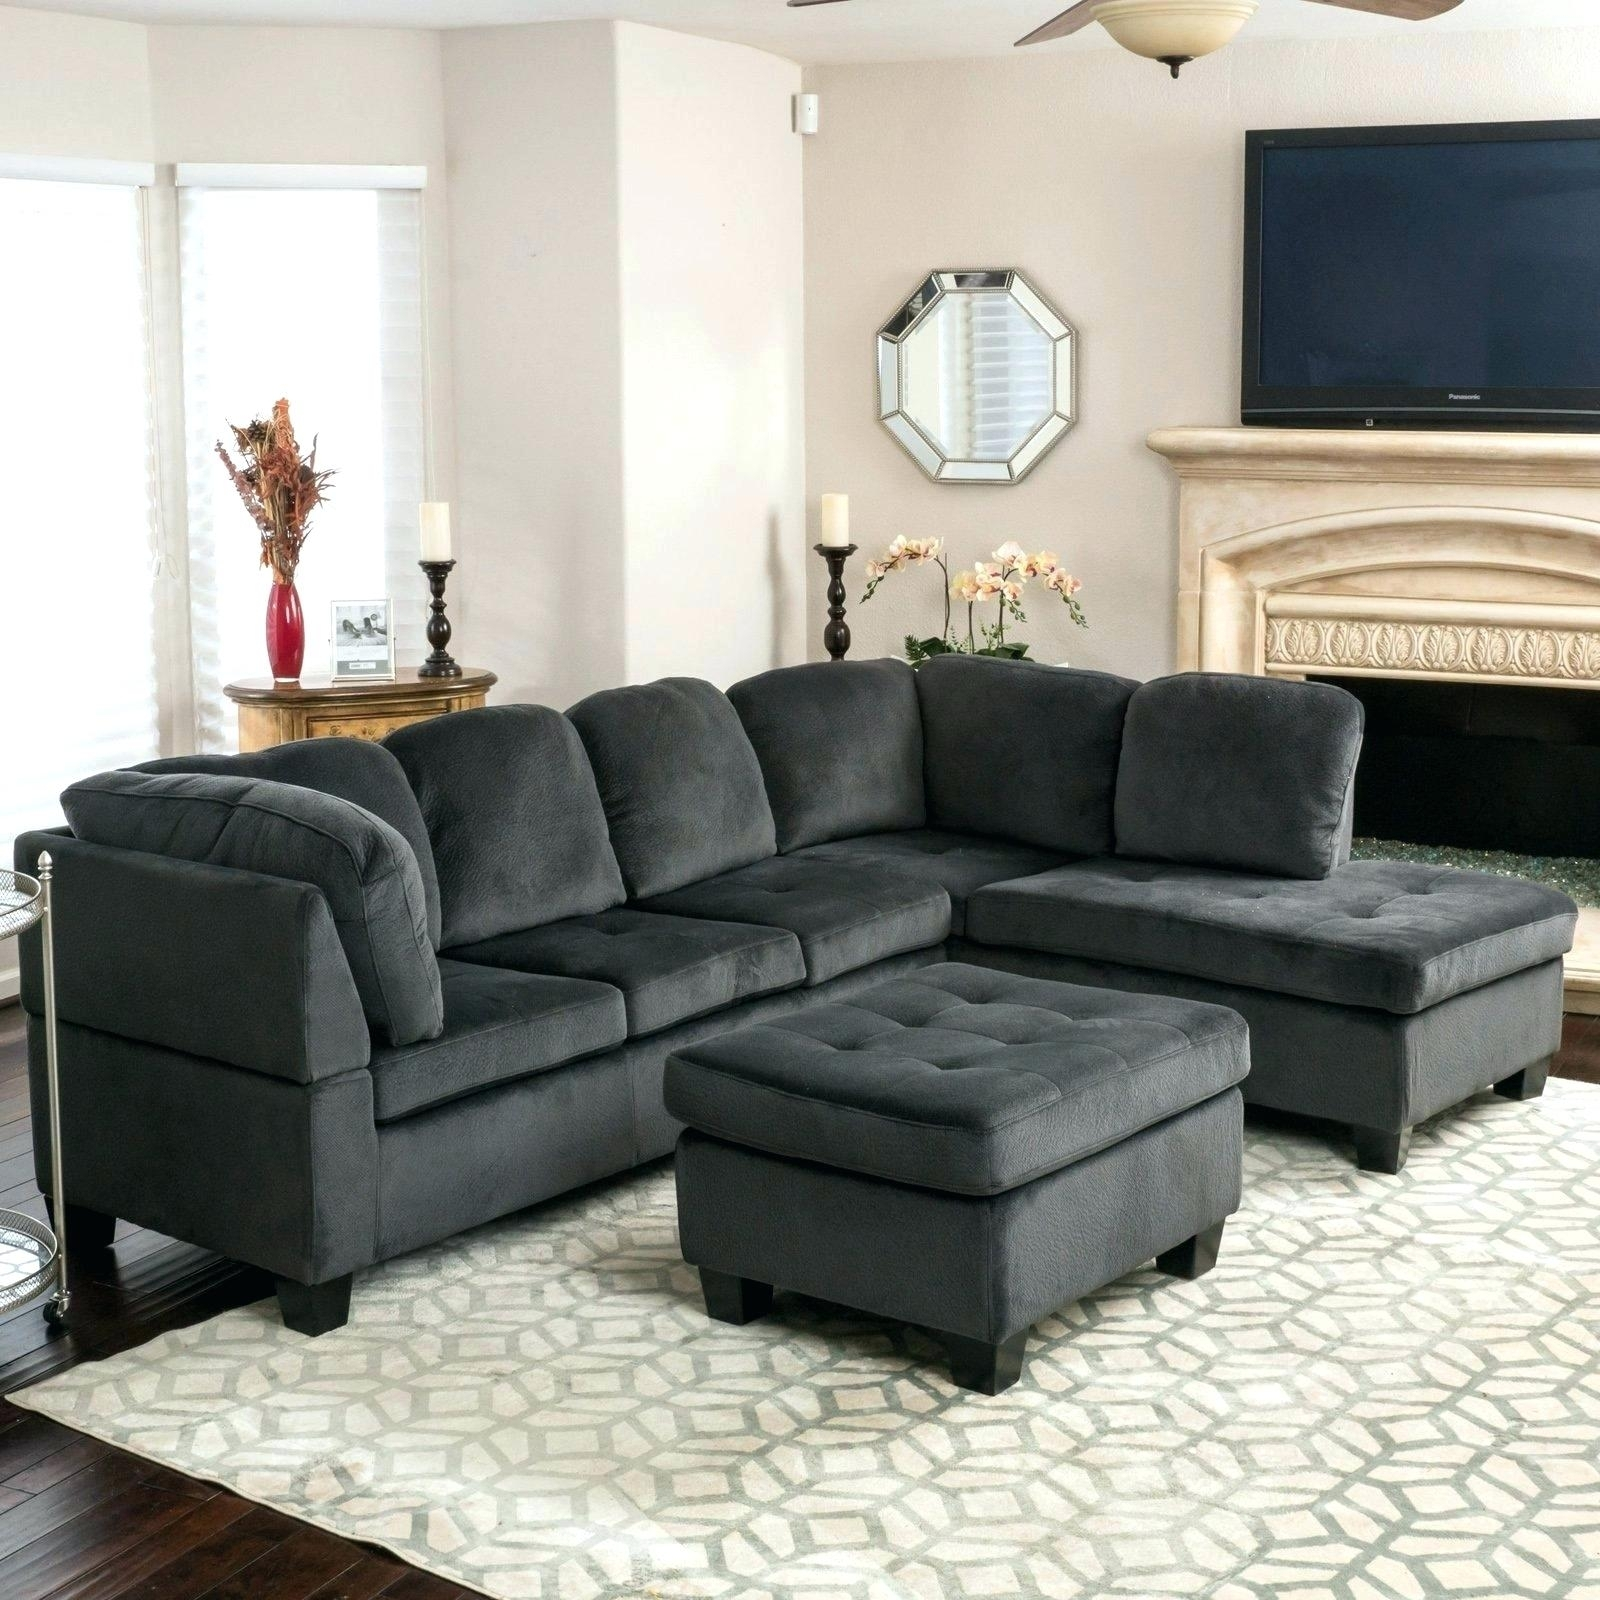 Leather Sectional Sofa Clearance Canada 2018 Popular Canada Sale Sectional Sofas